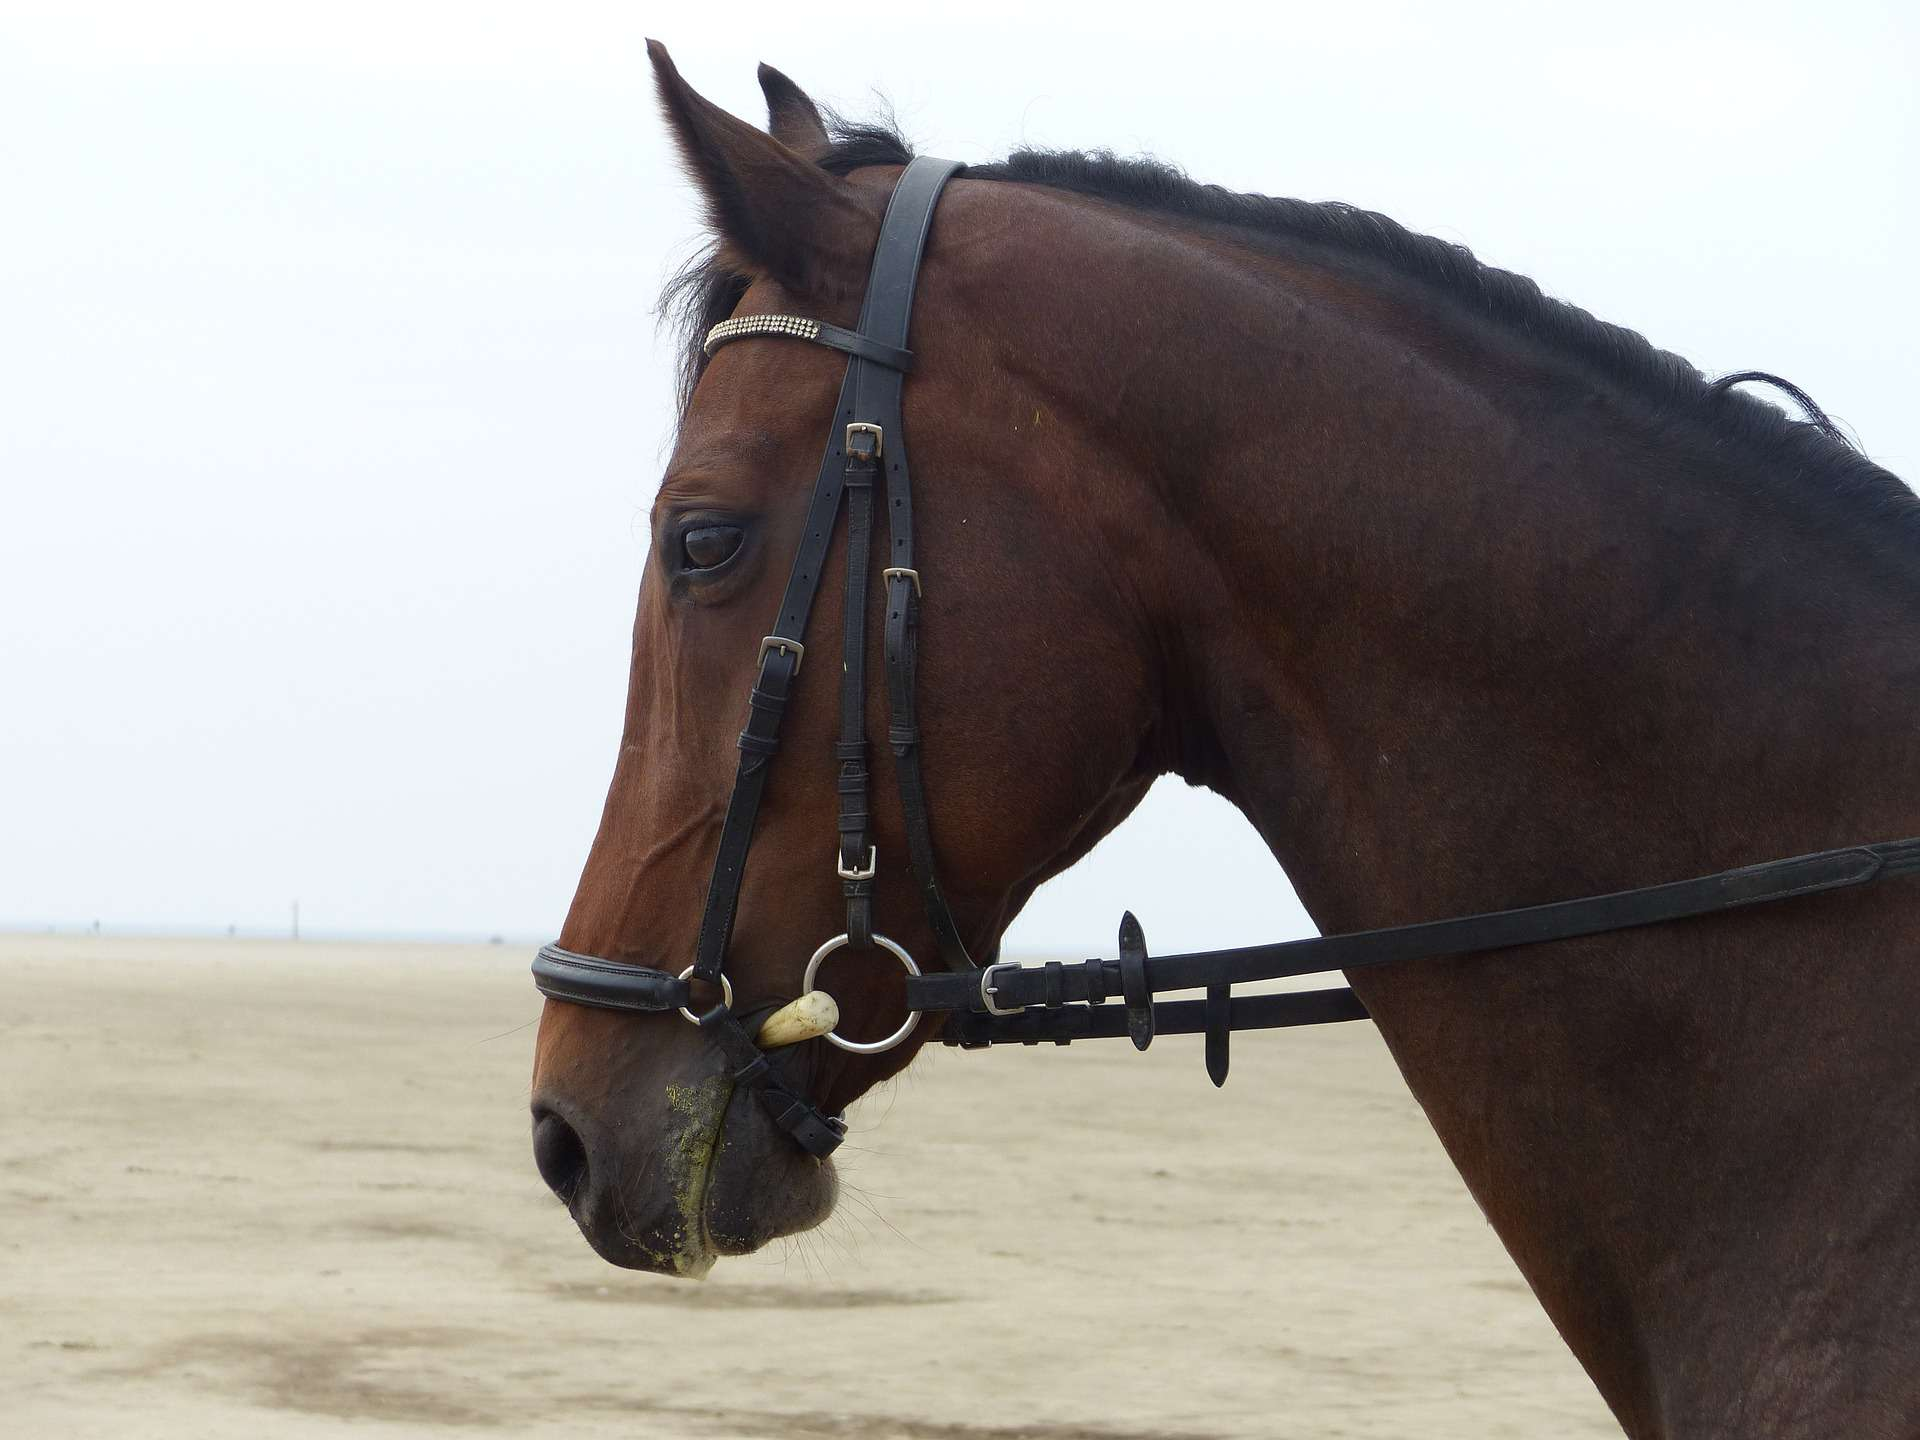 An English bridle on a horse.